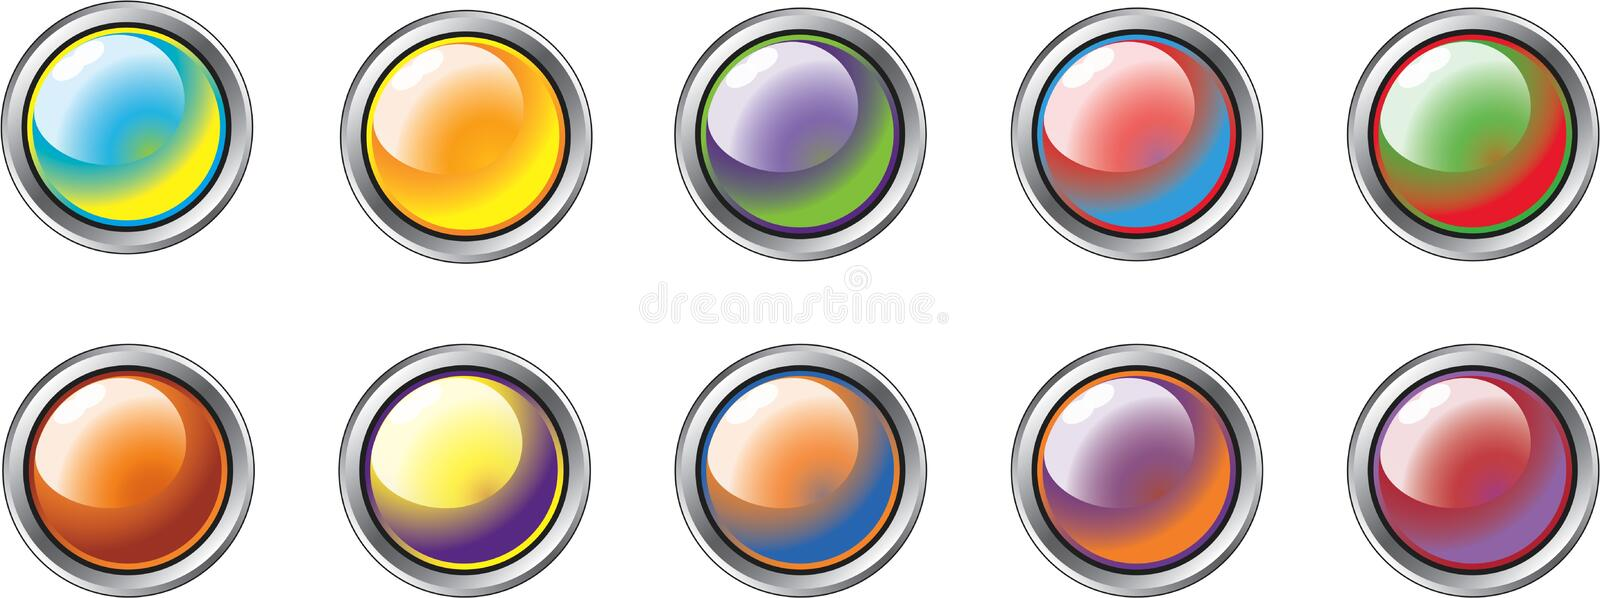 Different Colour Buttons 1 royalty free illustration